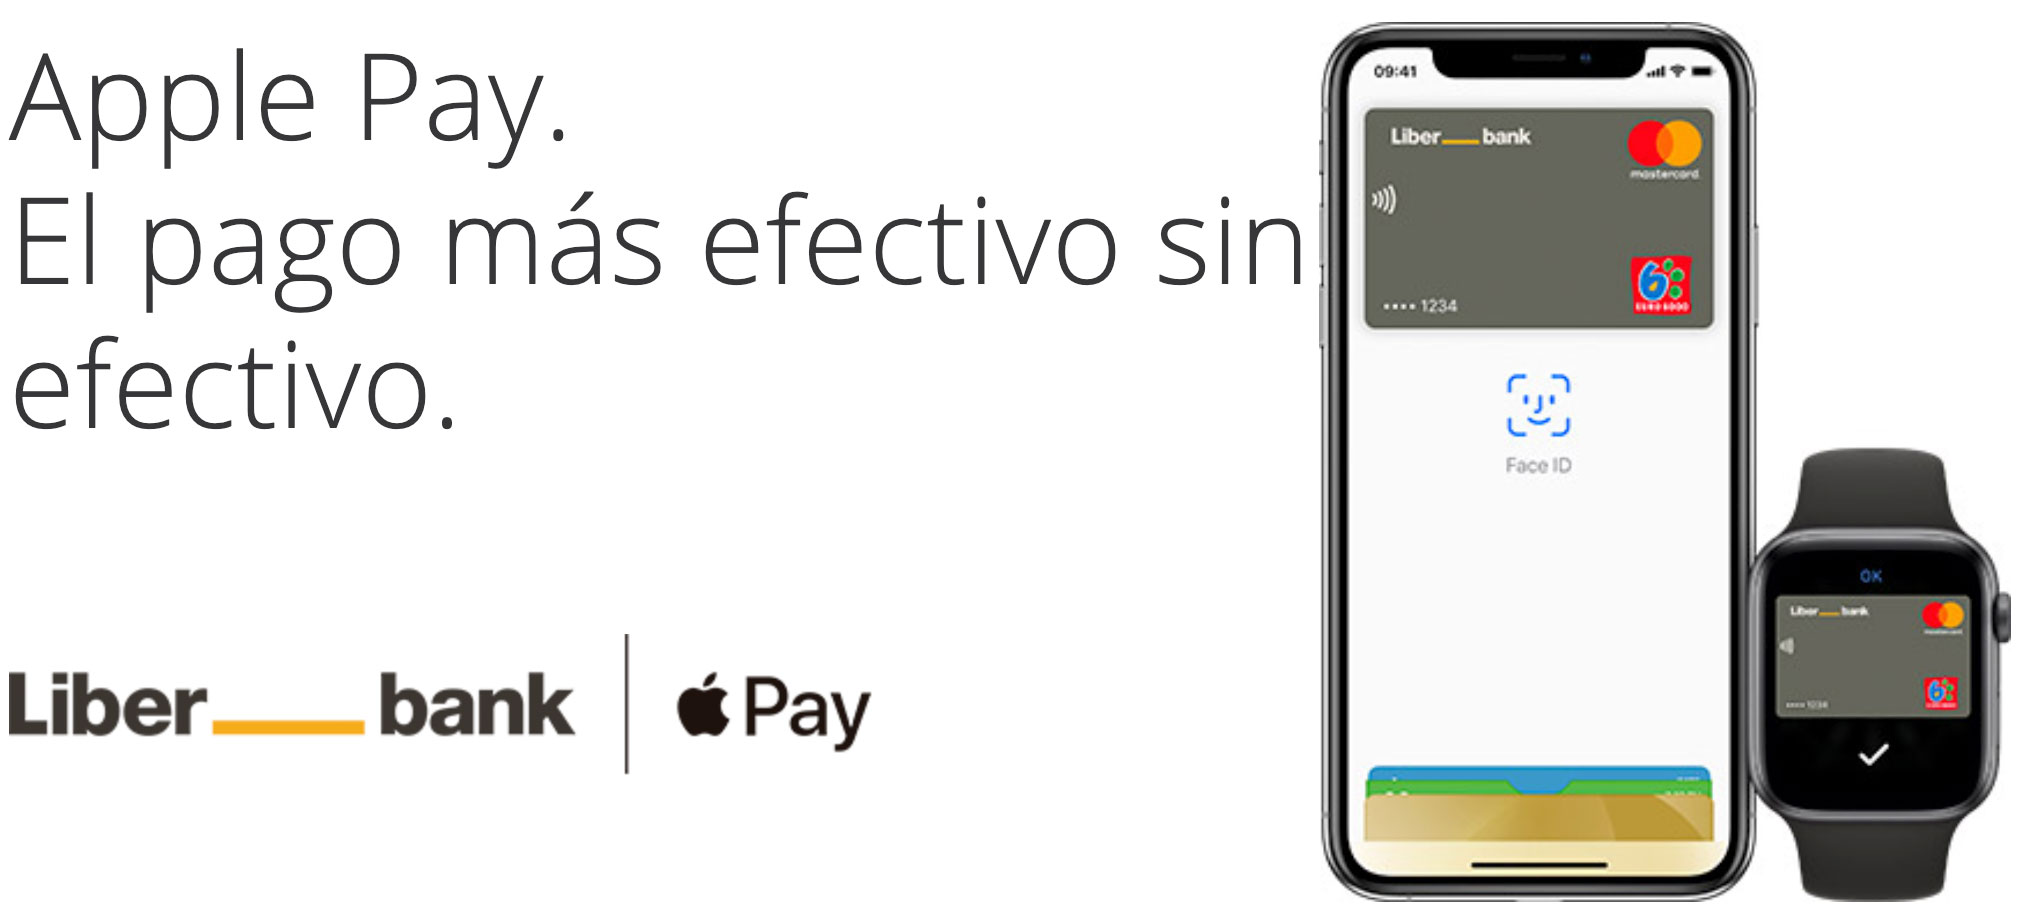 Liberbank y Apple Pay